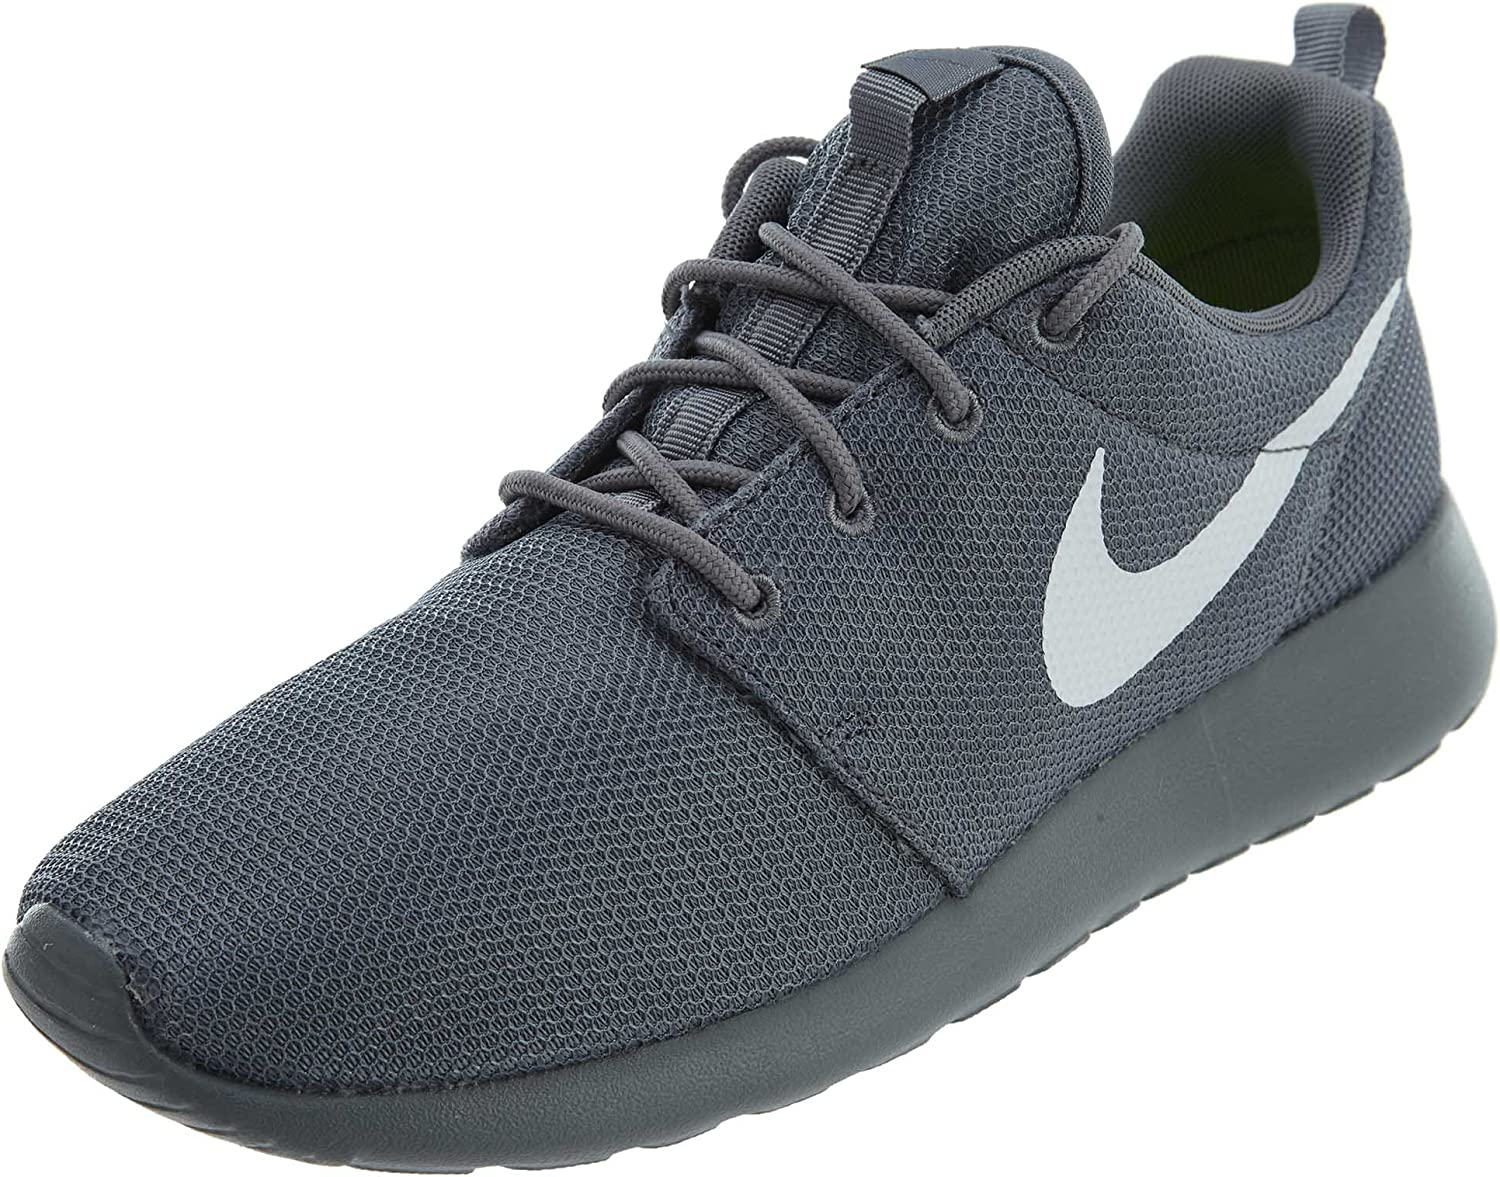 Nike Roshe One Men's Shoes Cool Grey